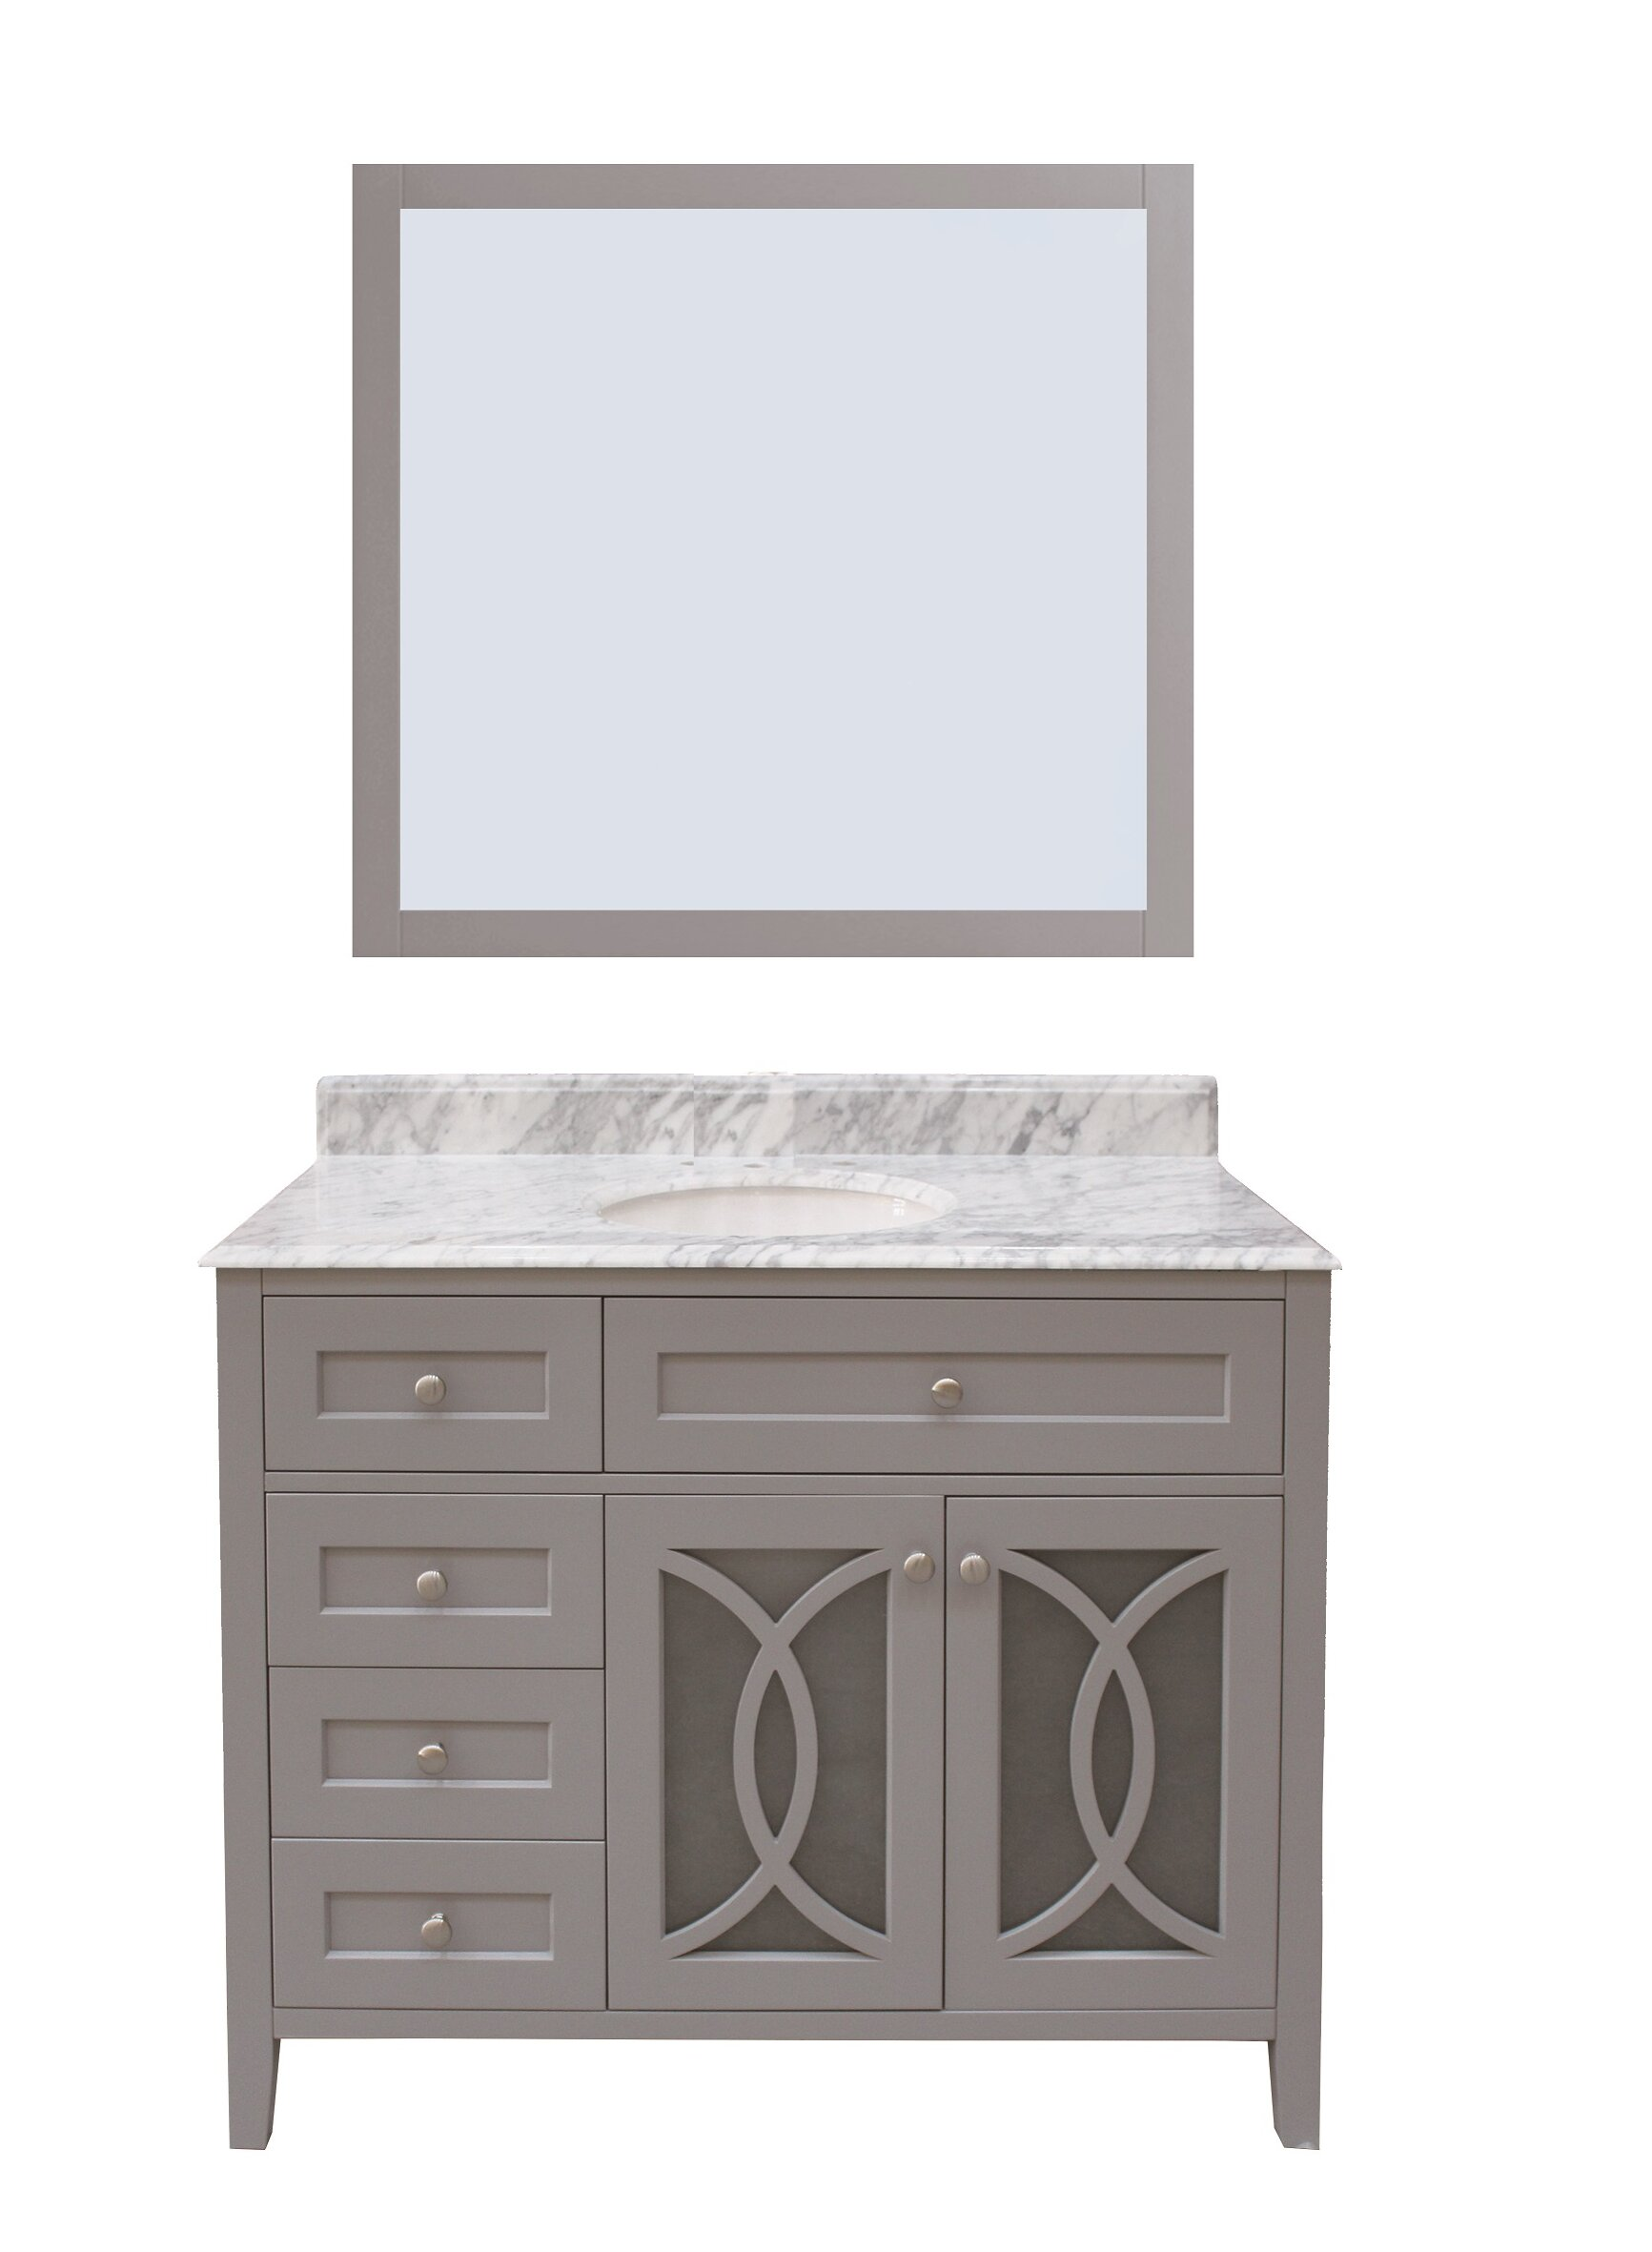 inspirational with depot trough design storage of inch kitchen and bathroom cabinet home bo vanity pictures top elegant sink luxury unfinished